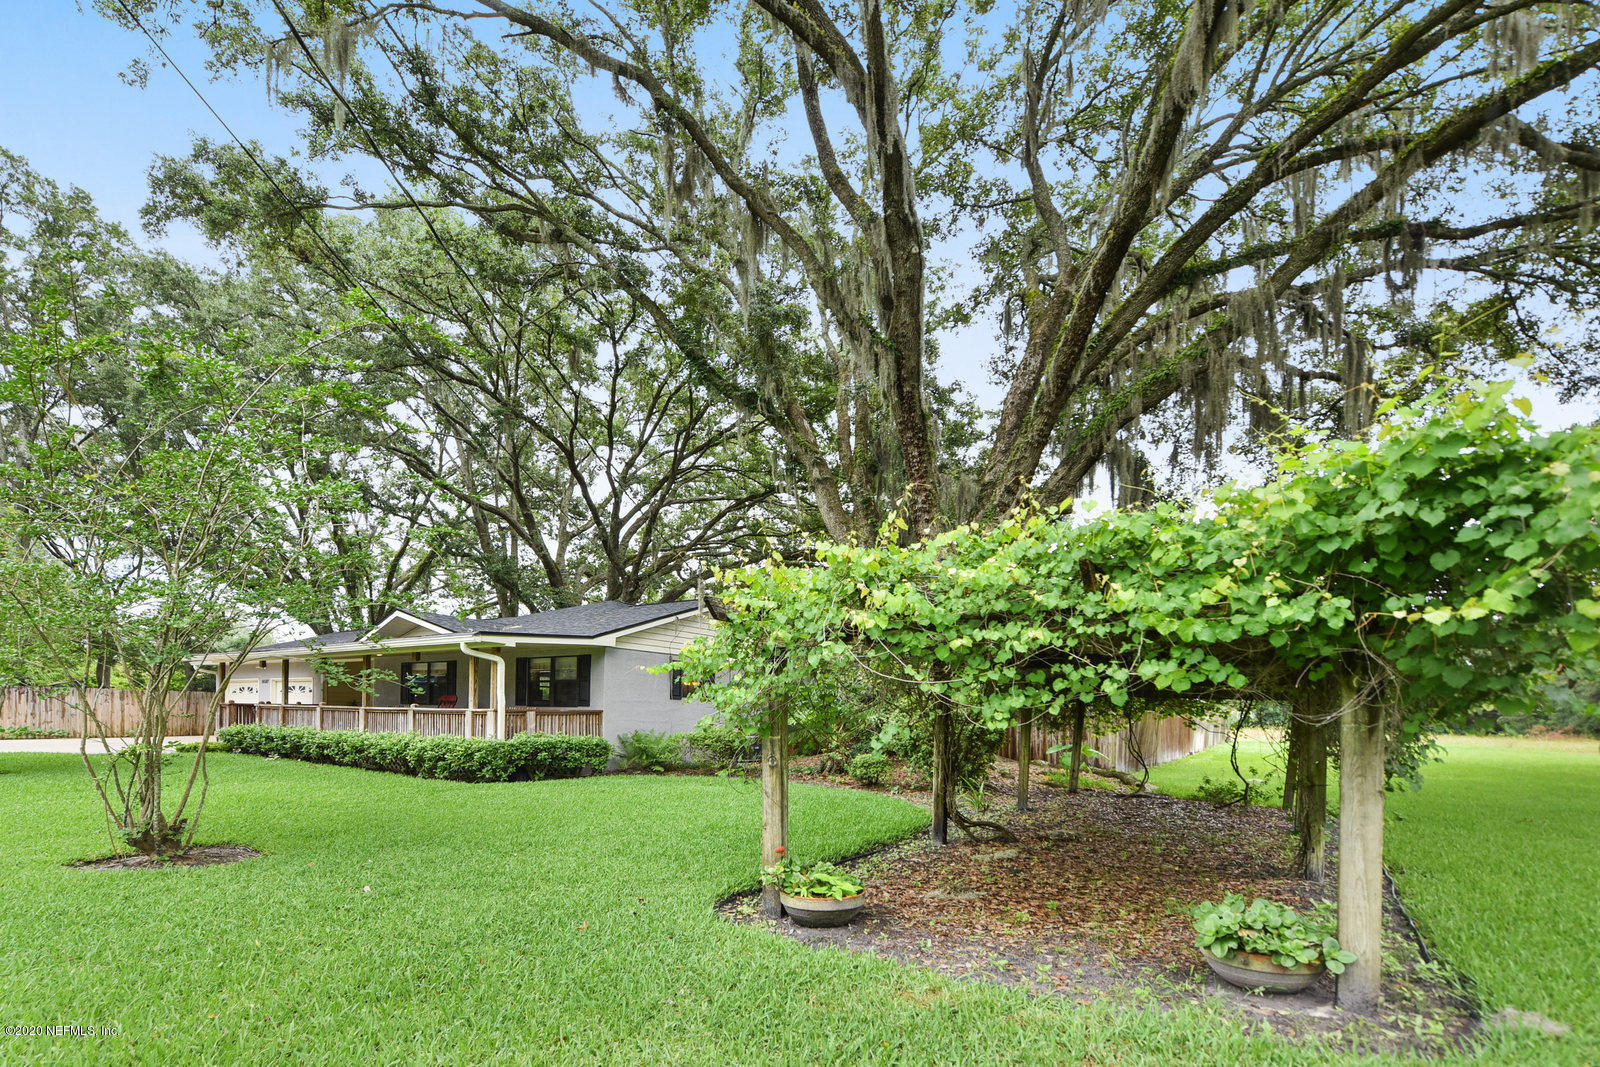 10507 PAPPY, JACKSONVILLE, FLORIDA 32257, 4 Bedrooms Bedrooms, ,2 BathroomsBathrooms,Residential,For sale,PAPPY,1057806